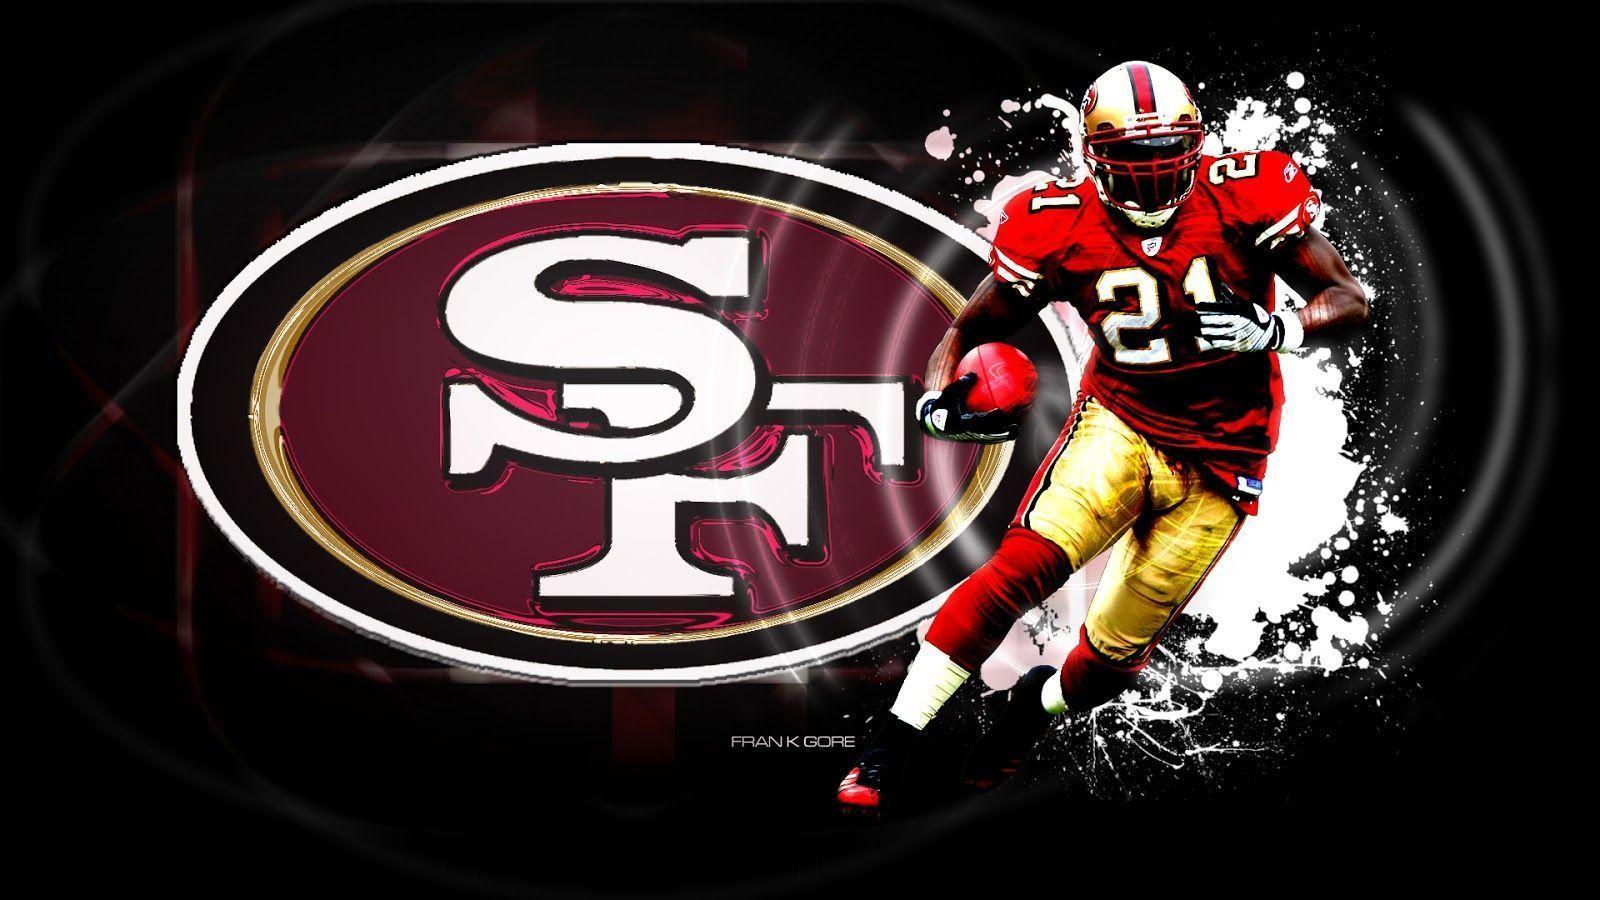 Free 49ers wallpapers your phone wallpaper cave 49ers wallpapers free art wallpaper voltagebd Choice Image